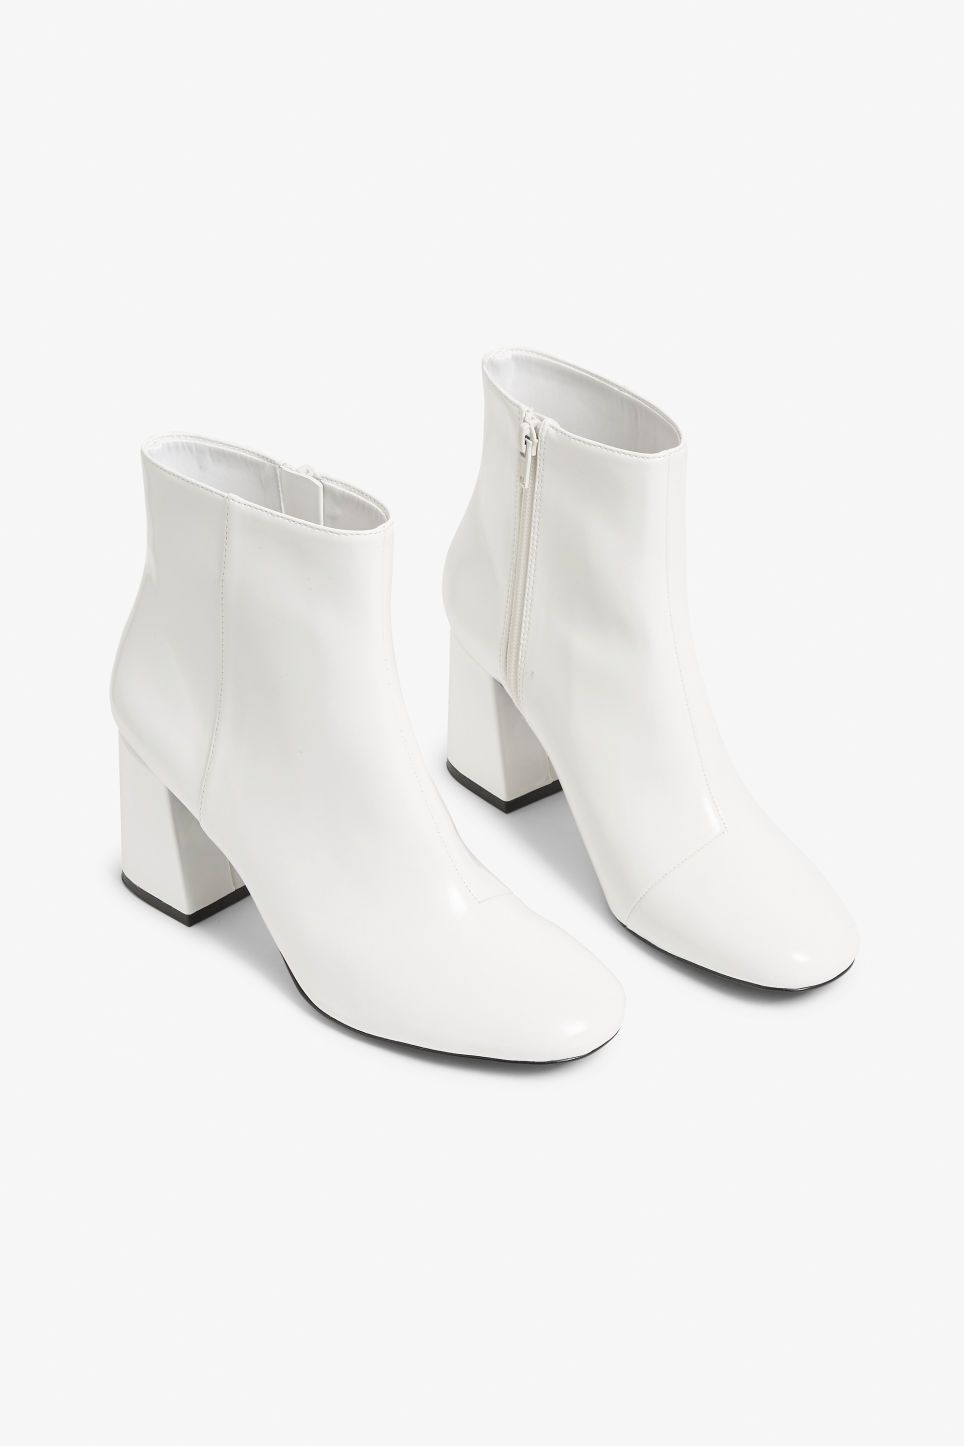 Monki | Boots, White ankle boots, Boots